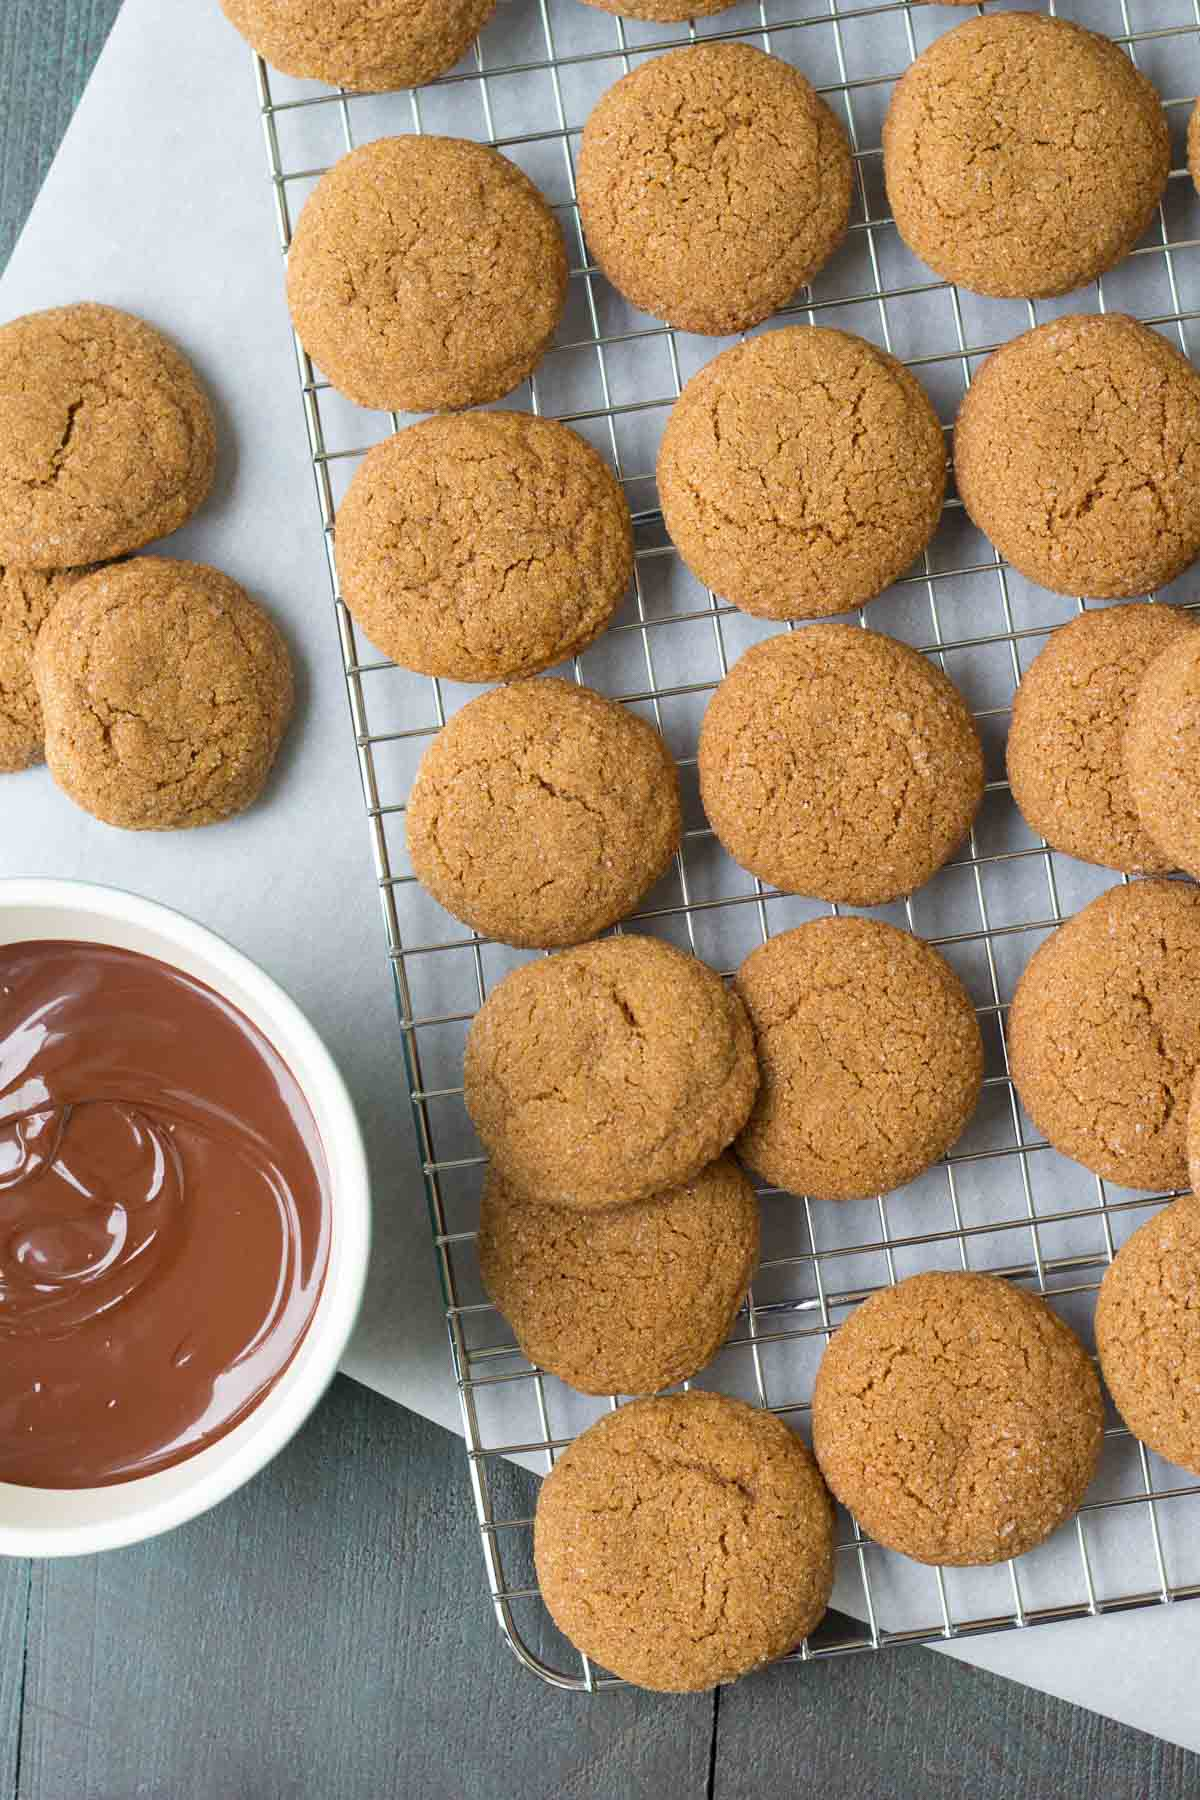 These soft and chewy molasses spice cookies are dipped in dark chocolate! They are a spiced Christmas cookie made with whole wheat flour and brown sugar.